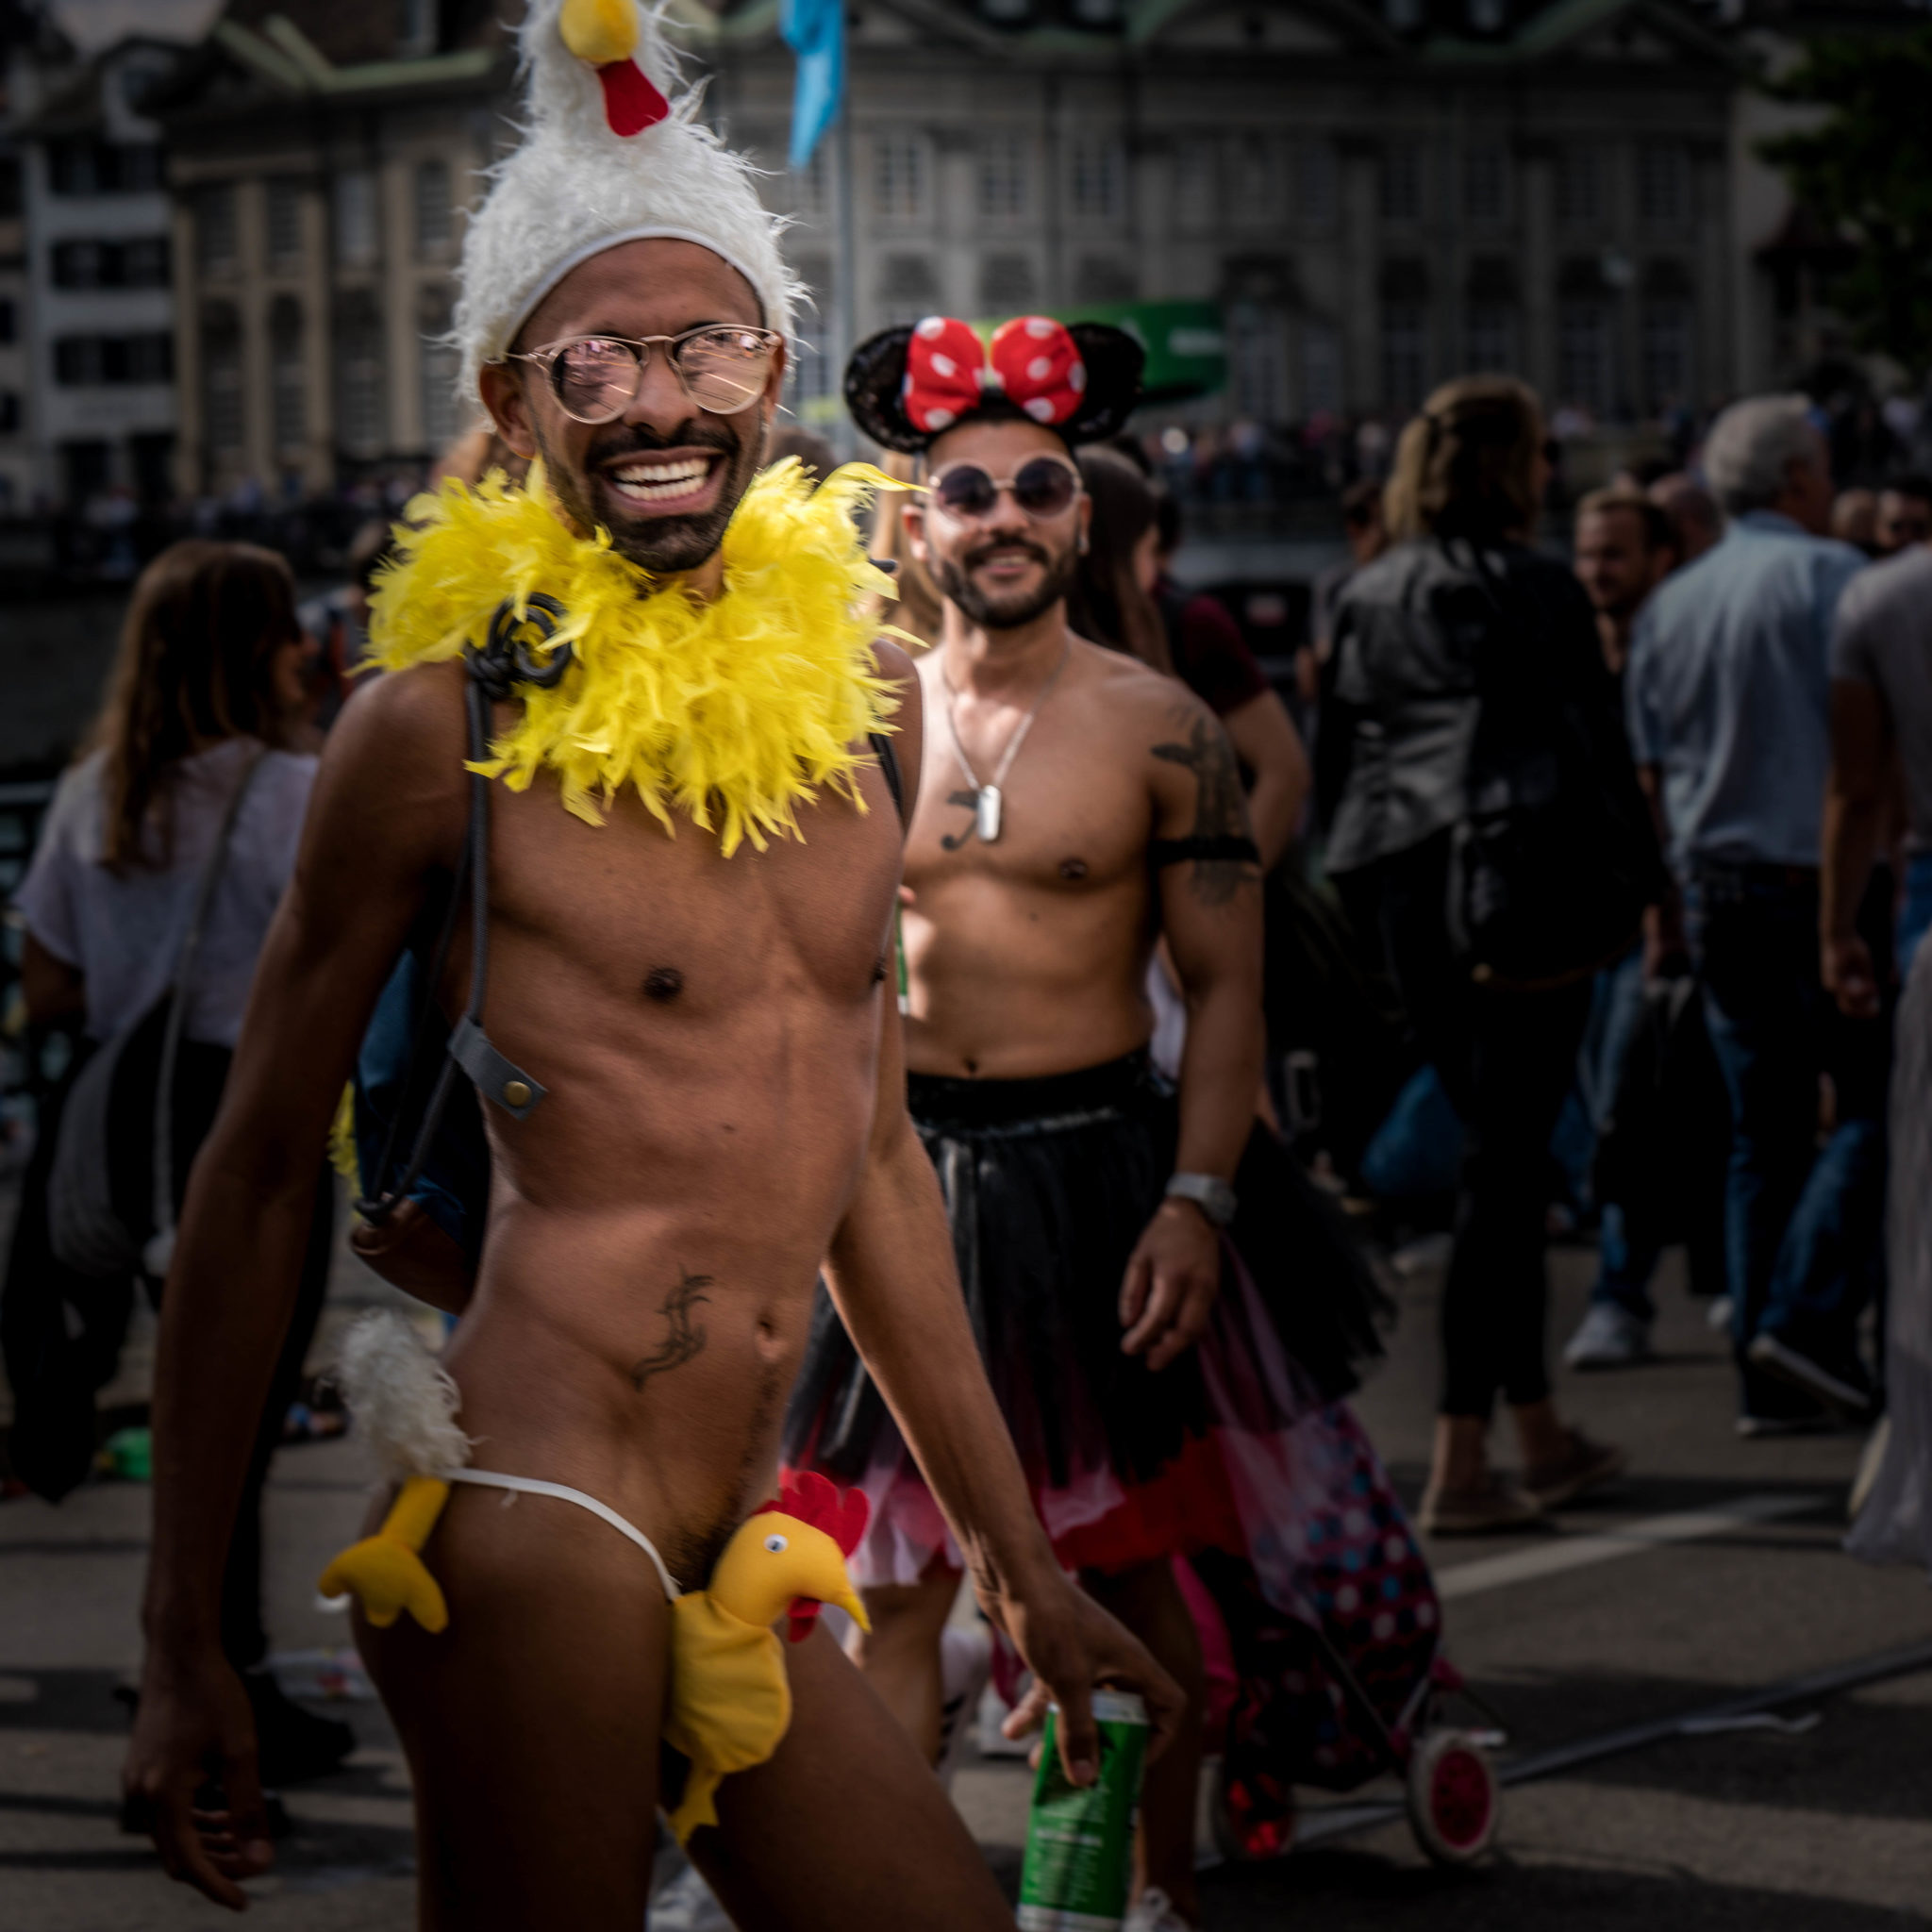 Streetparade ©JLa-photographie Foto by Juerg Lauber